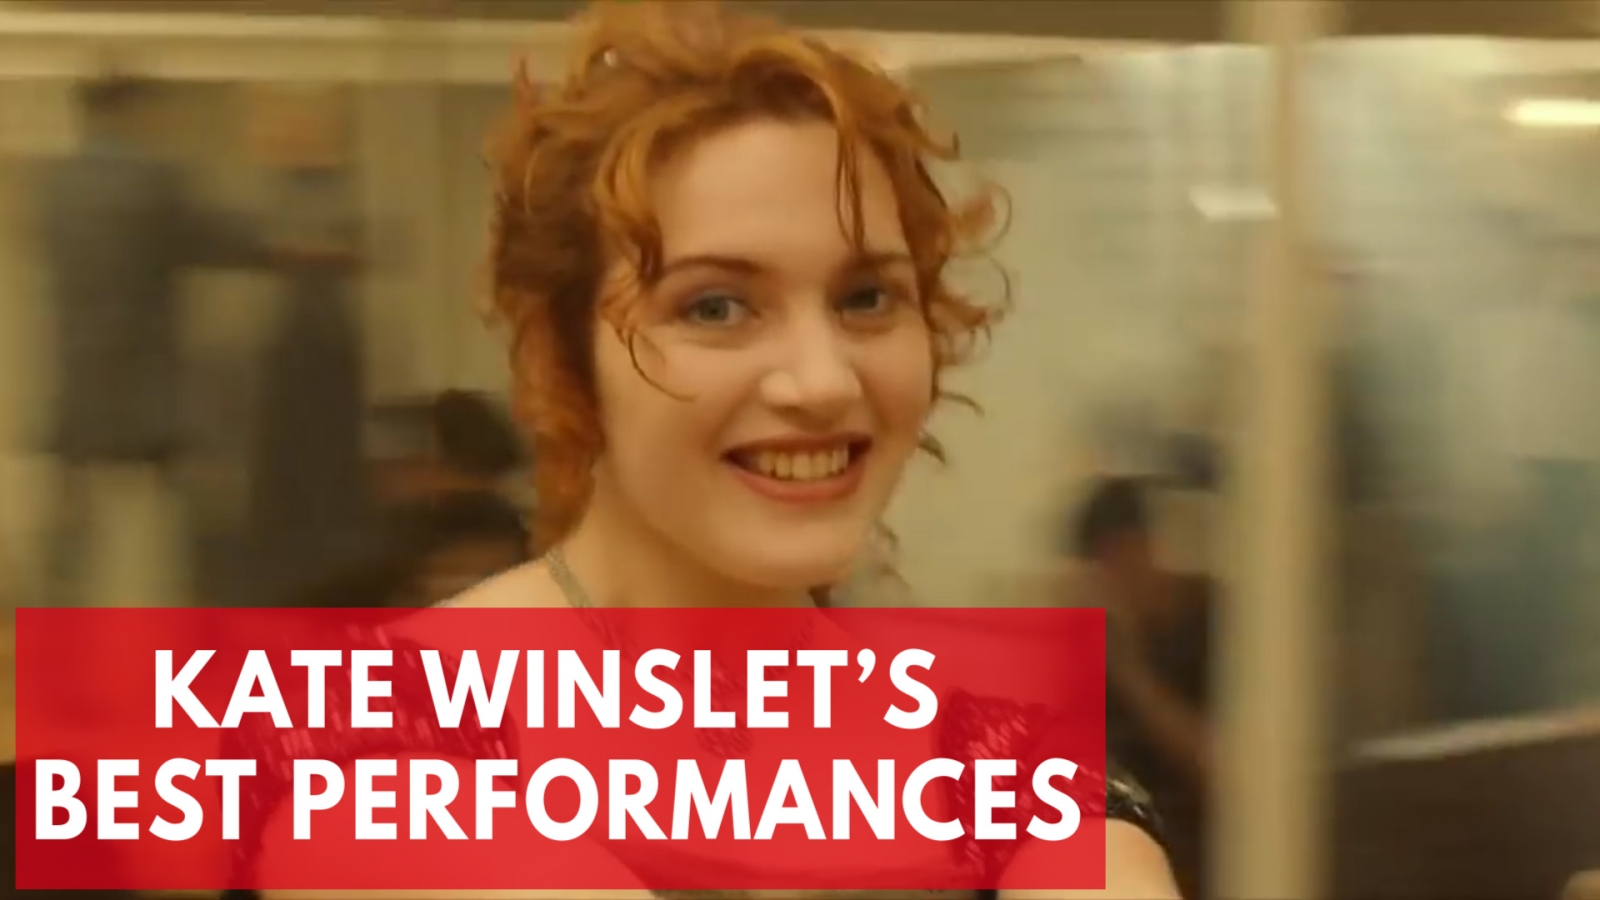 Kate Winslet's best performances